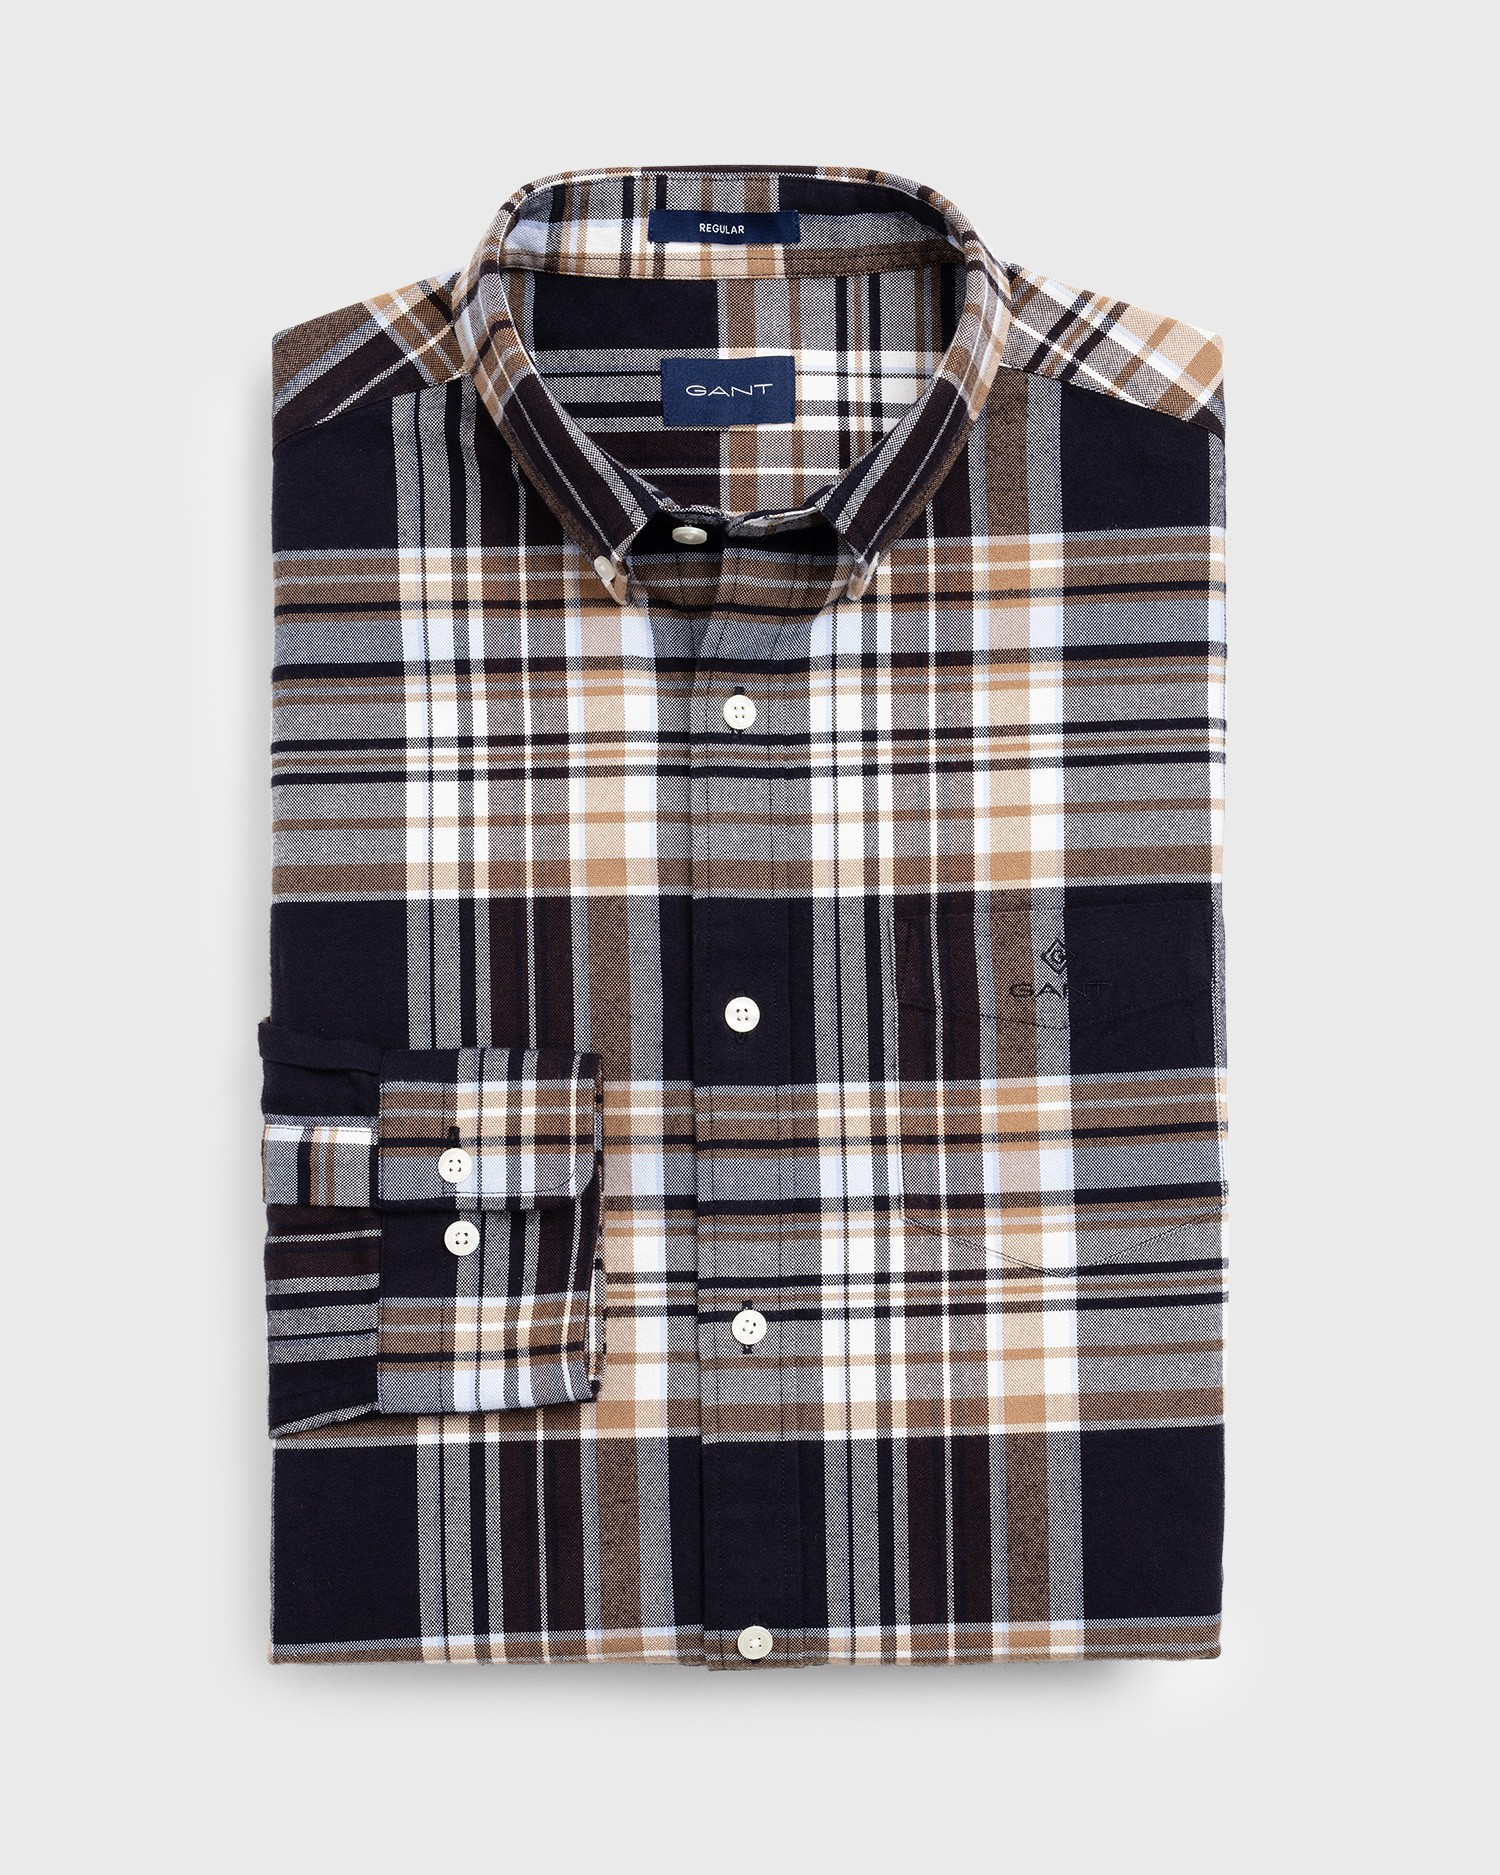 GANT Men's Oxford Regular Fit Shirt - 3005870